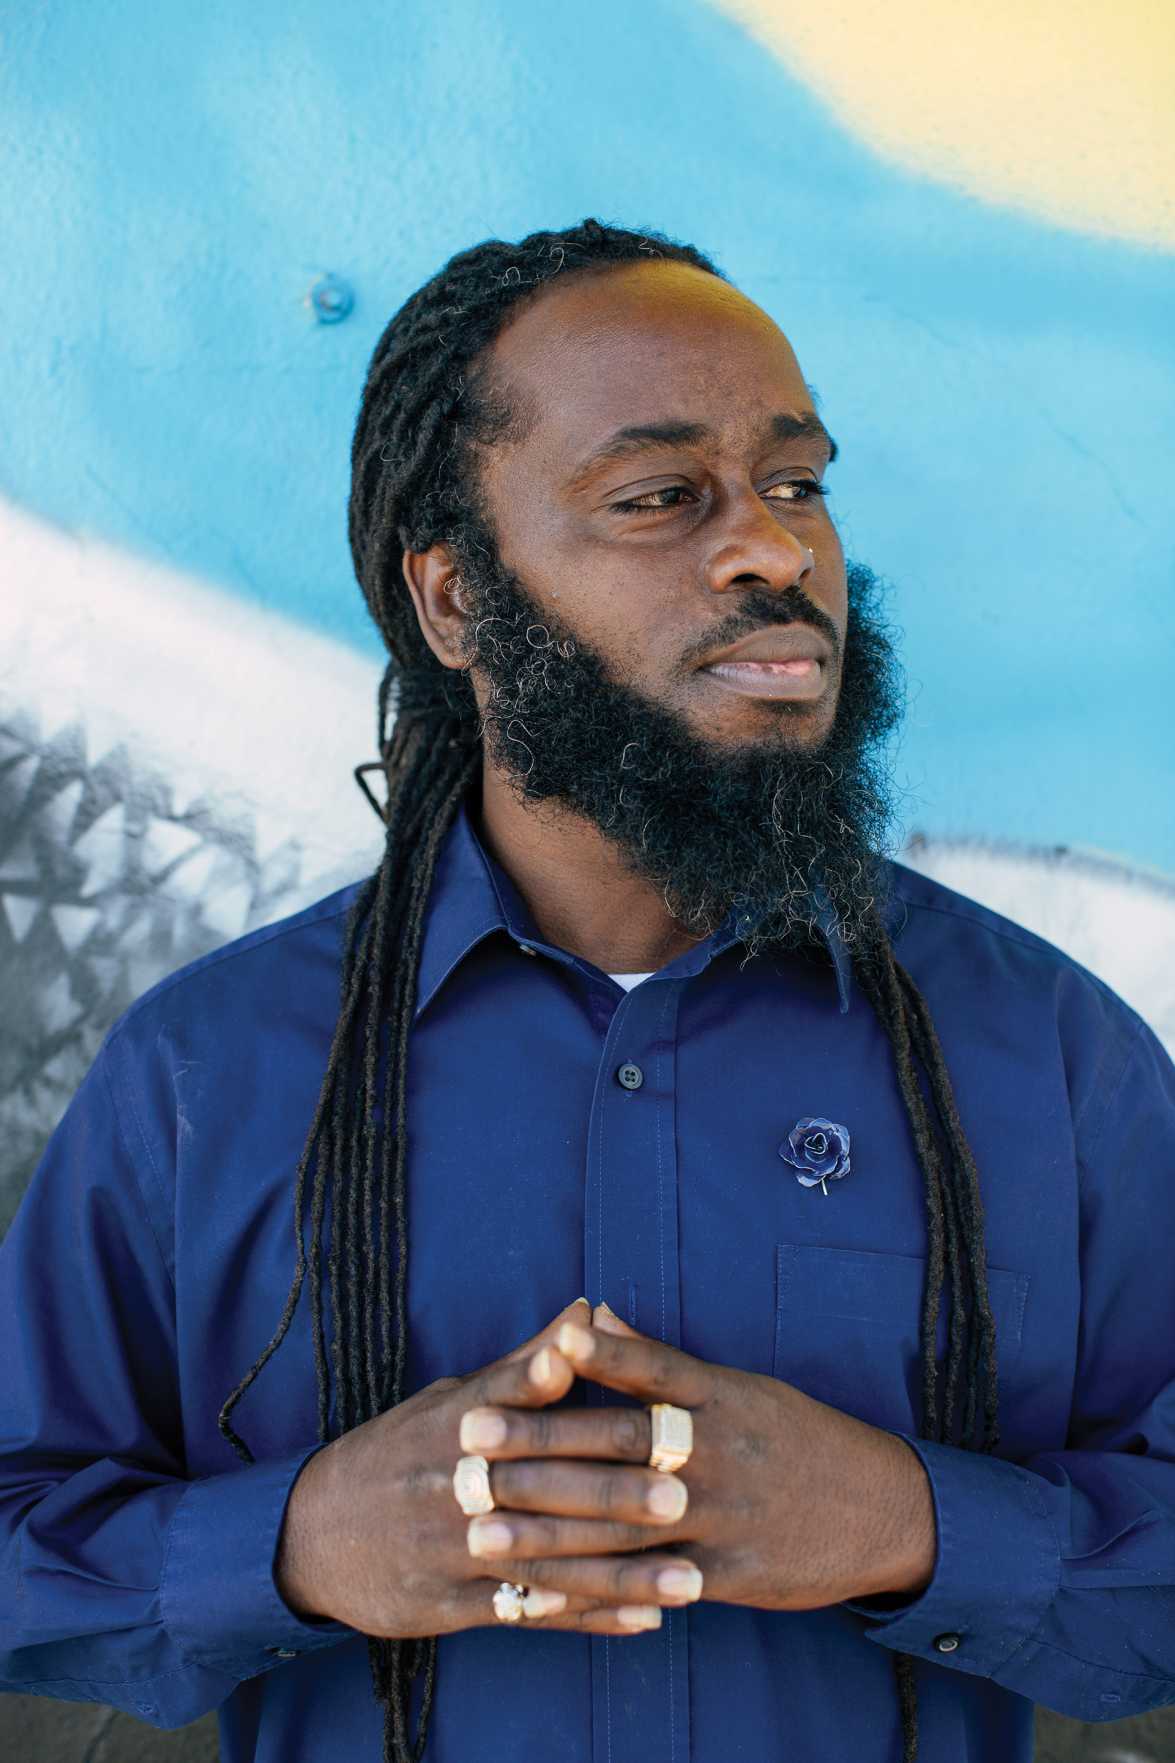 Muralist Charles Key Wants to Teach Kids That Art Can Be a Way to Dream